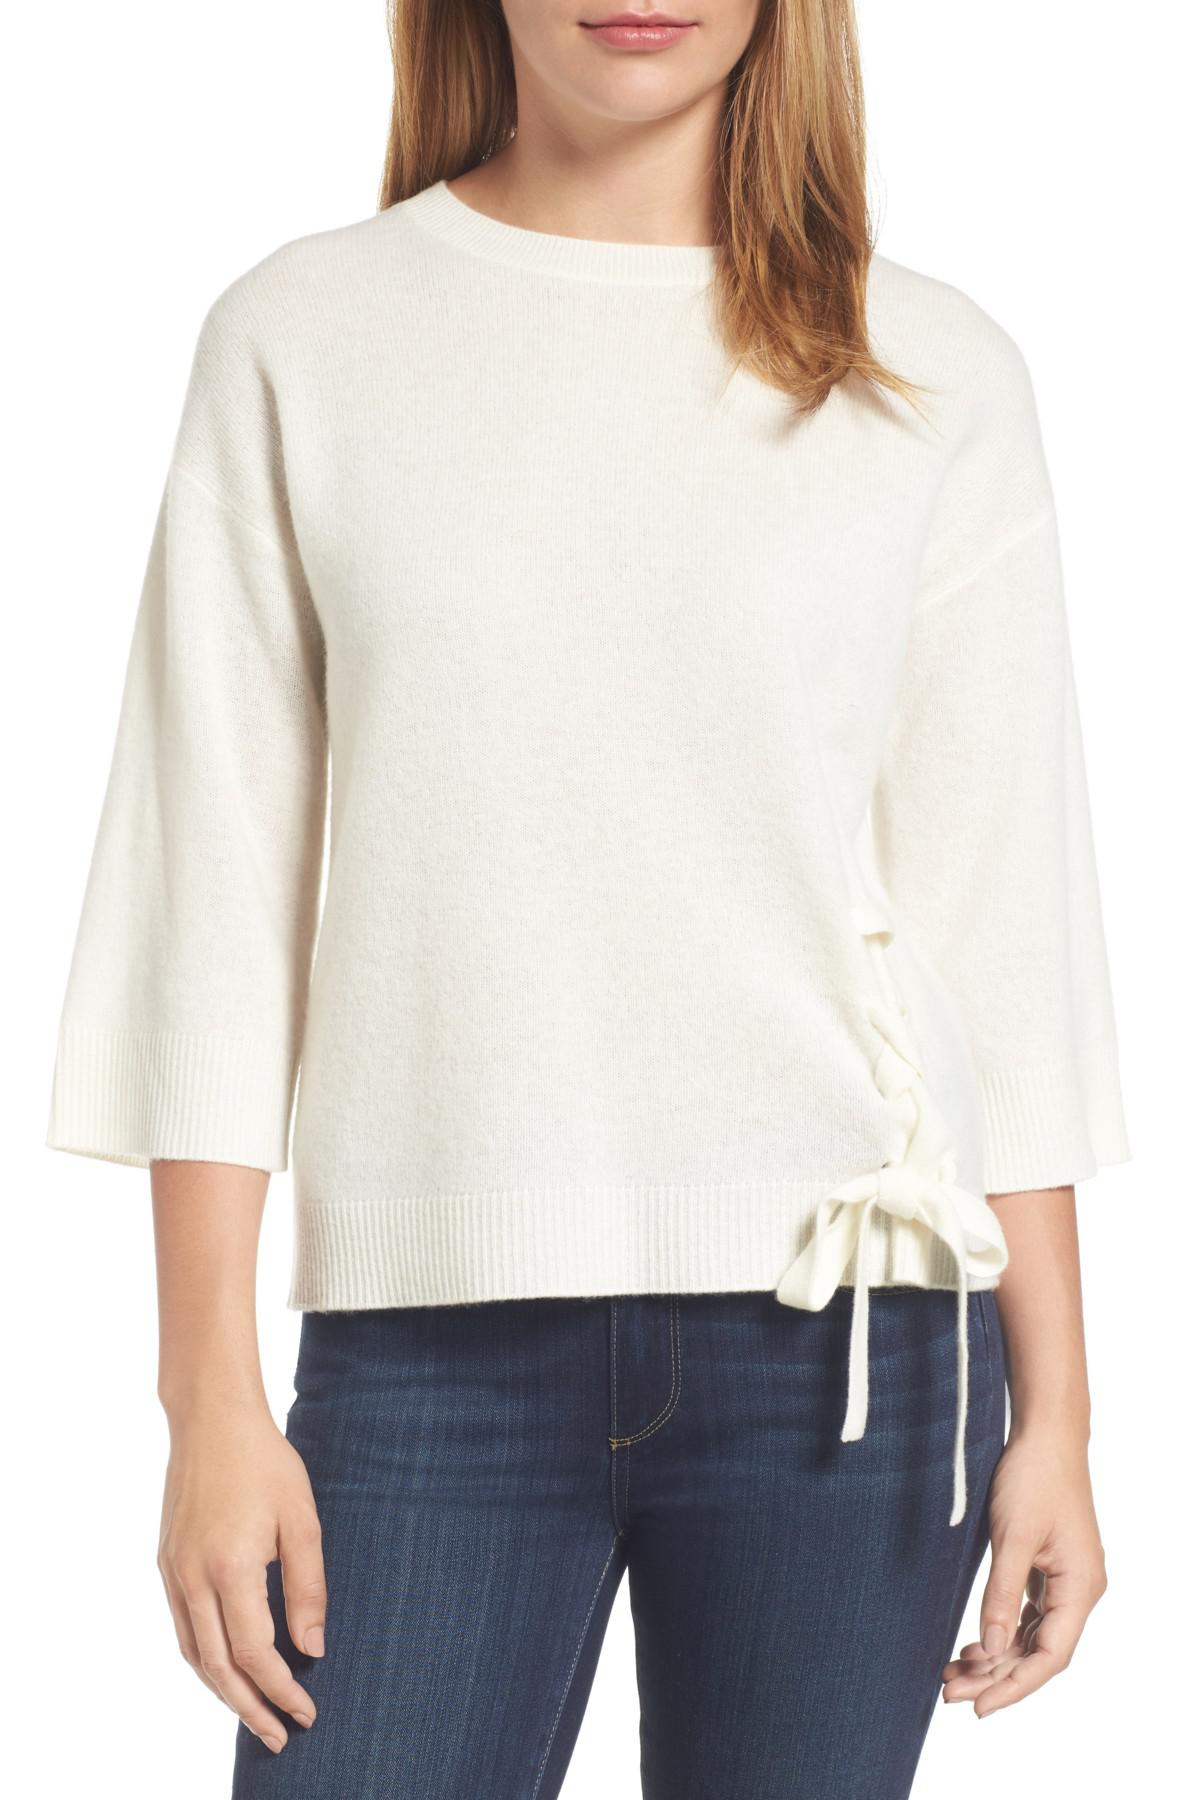 d24e02653e00b Lyst - Halogen Side Tie Wool And Cashmere Sweater in White